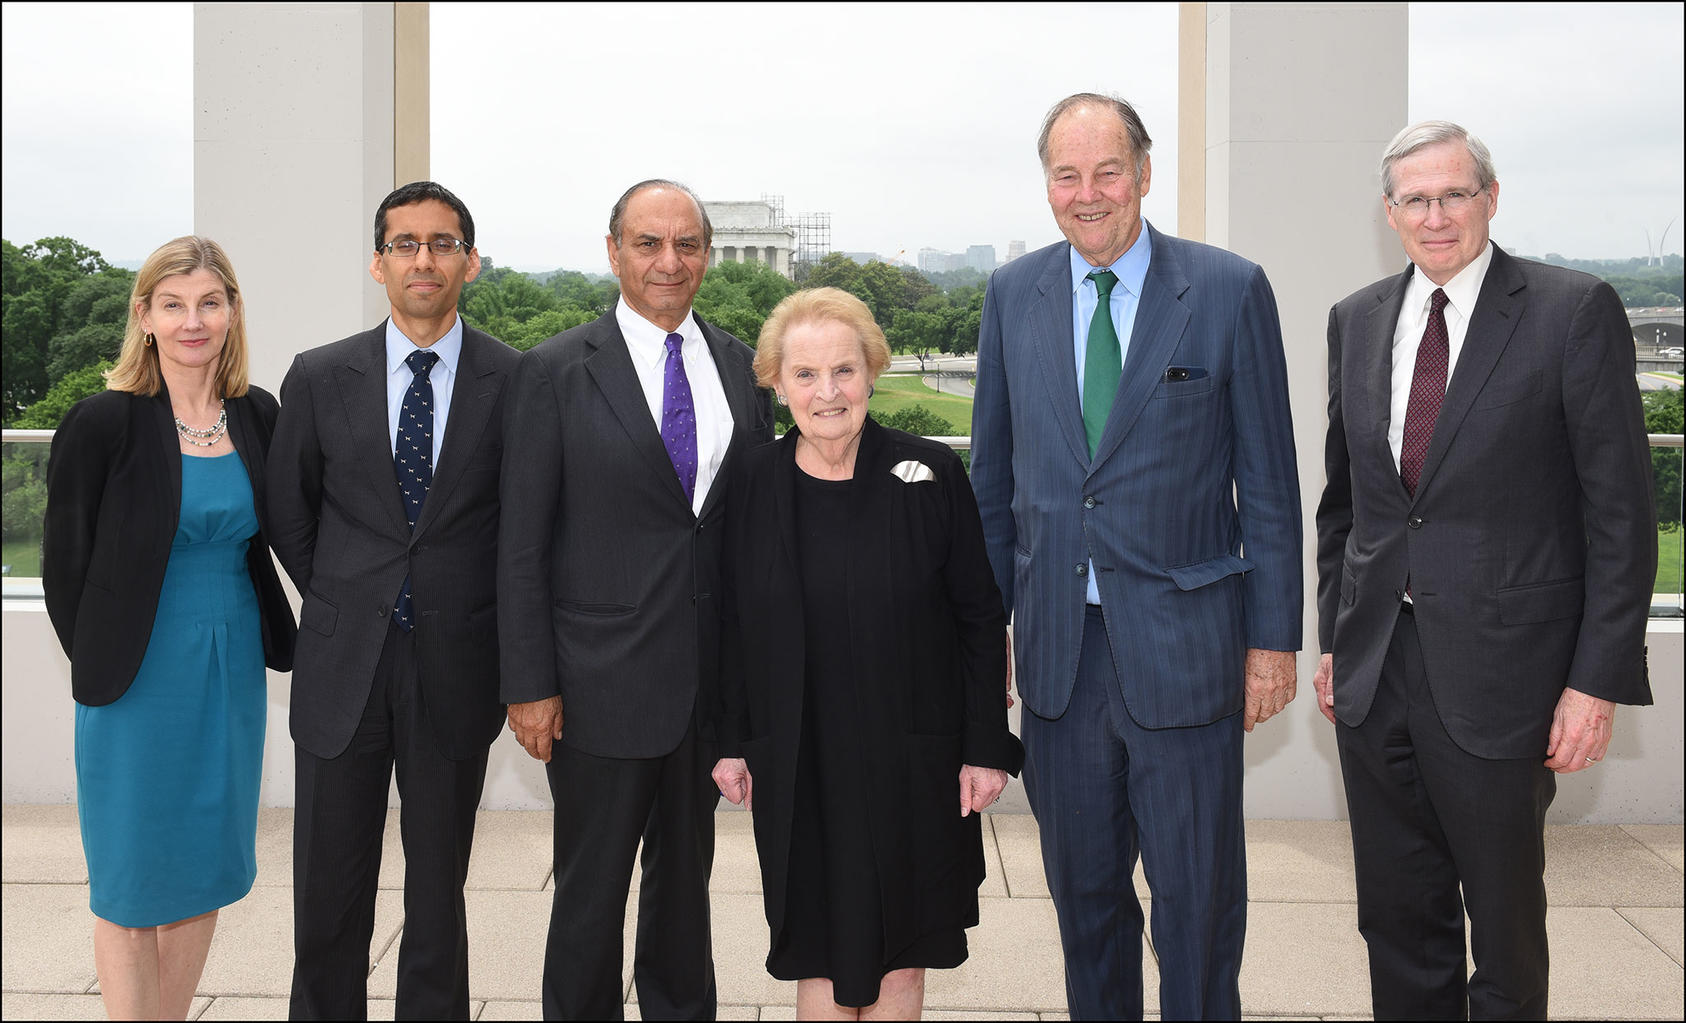 Pictured left to right, Nancy Lindborg, Michael Singh, Farooq Kathwari, Madeleine Albright, Governor Thomas Kean, Stephen Hadley